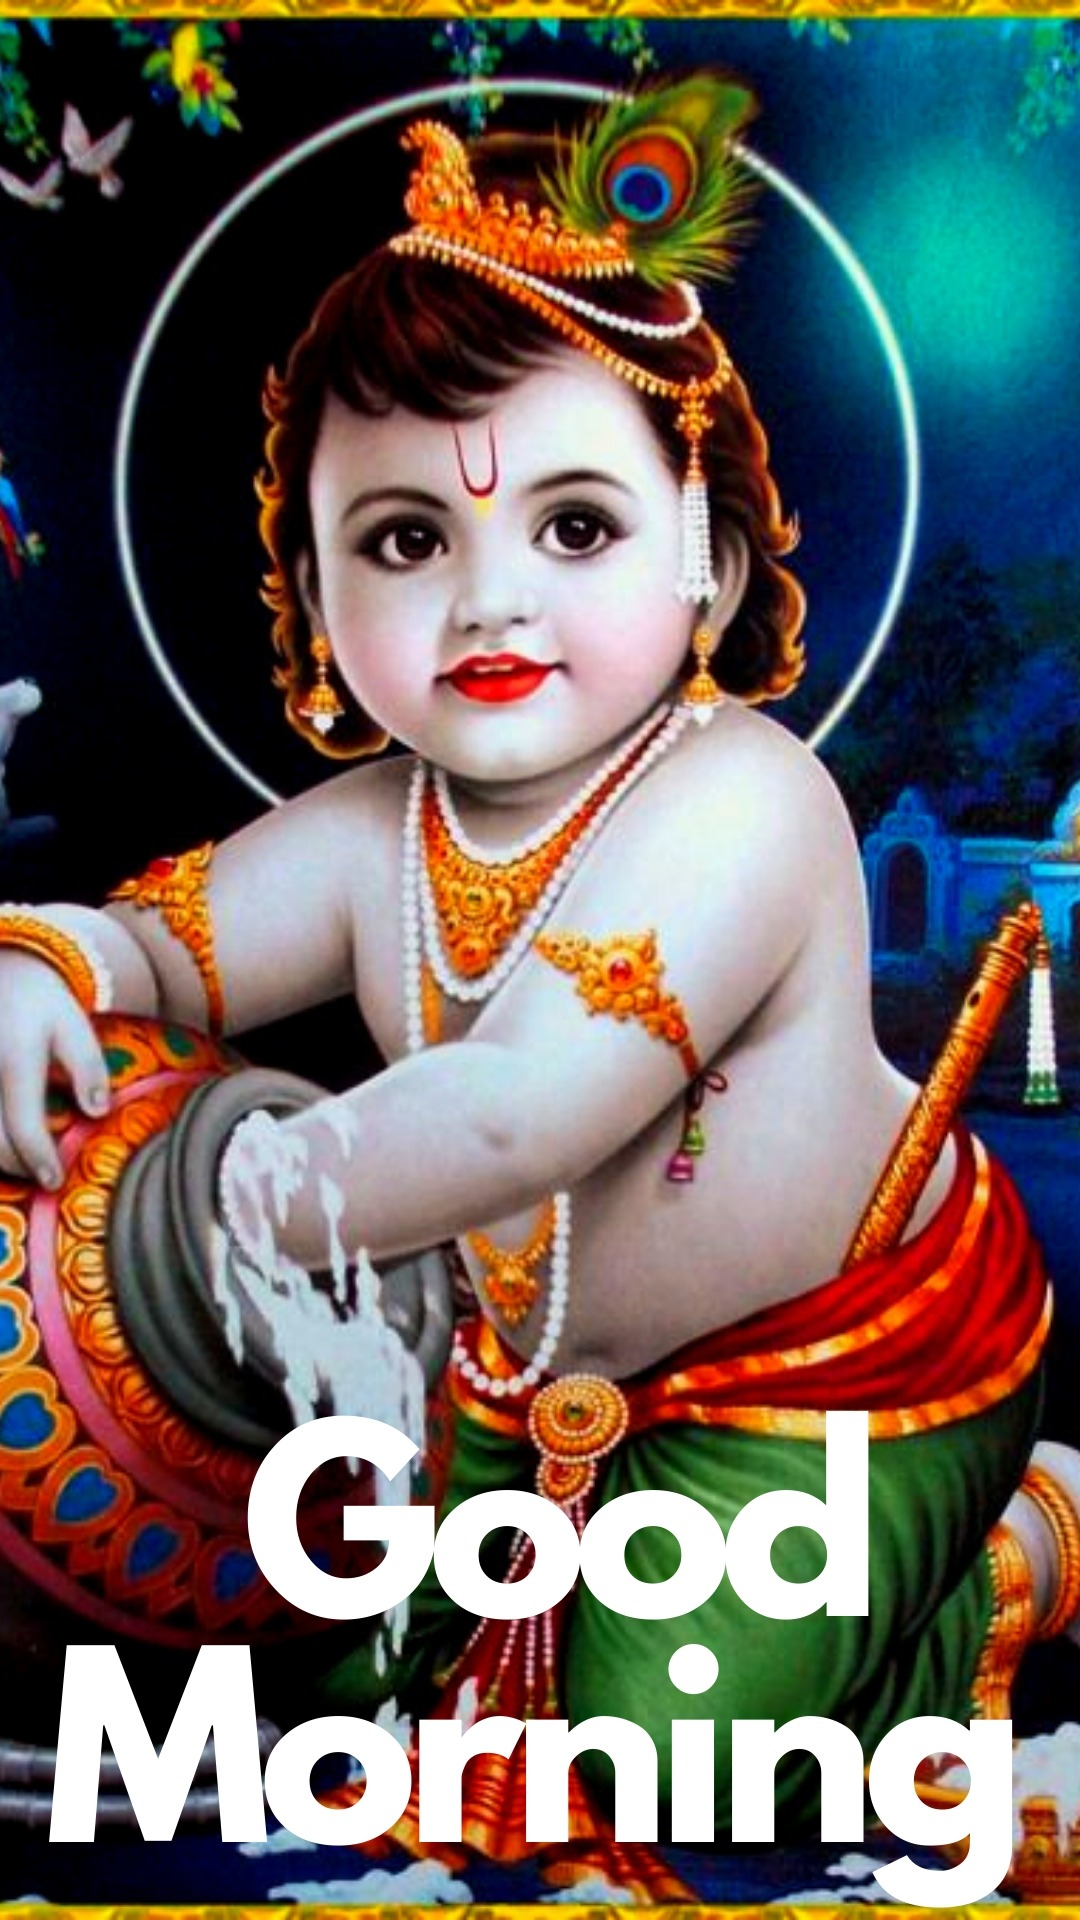 good morning images with little krishna